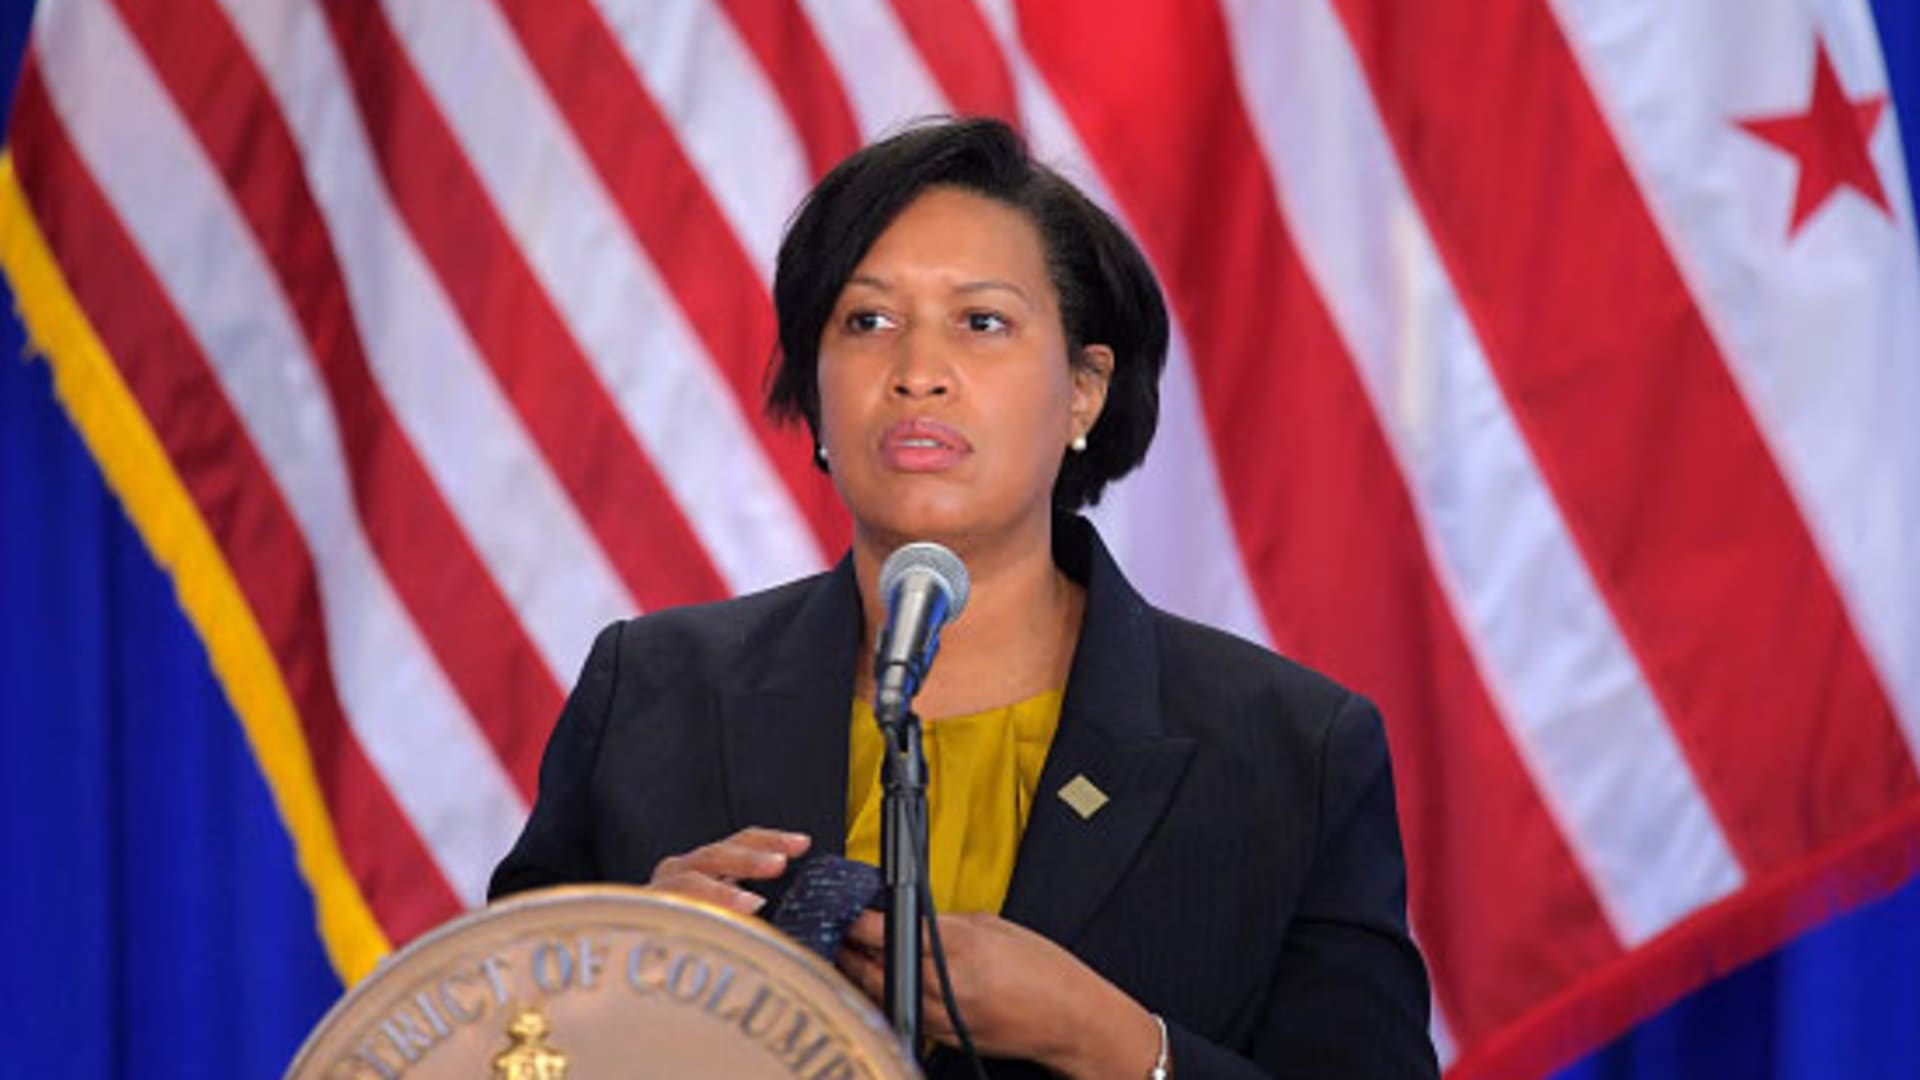 Washington DC Mayor Muriel Bowser speaks at press conference addressing how the city is responding to breaching of the U.S. Capitol on the day before in Washington, DC on January 7, 2020.